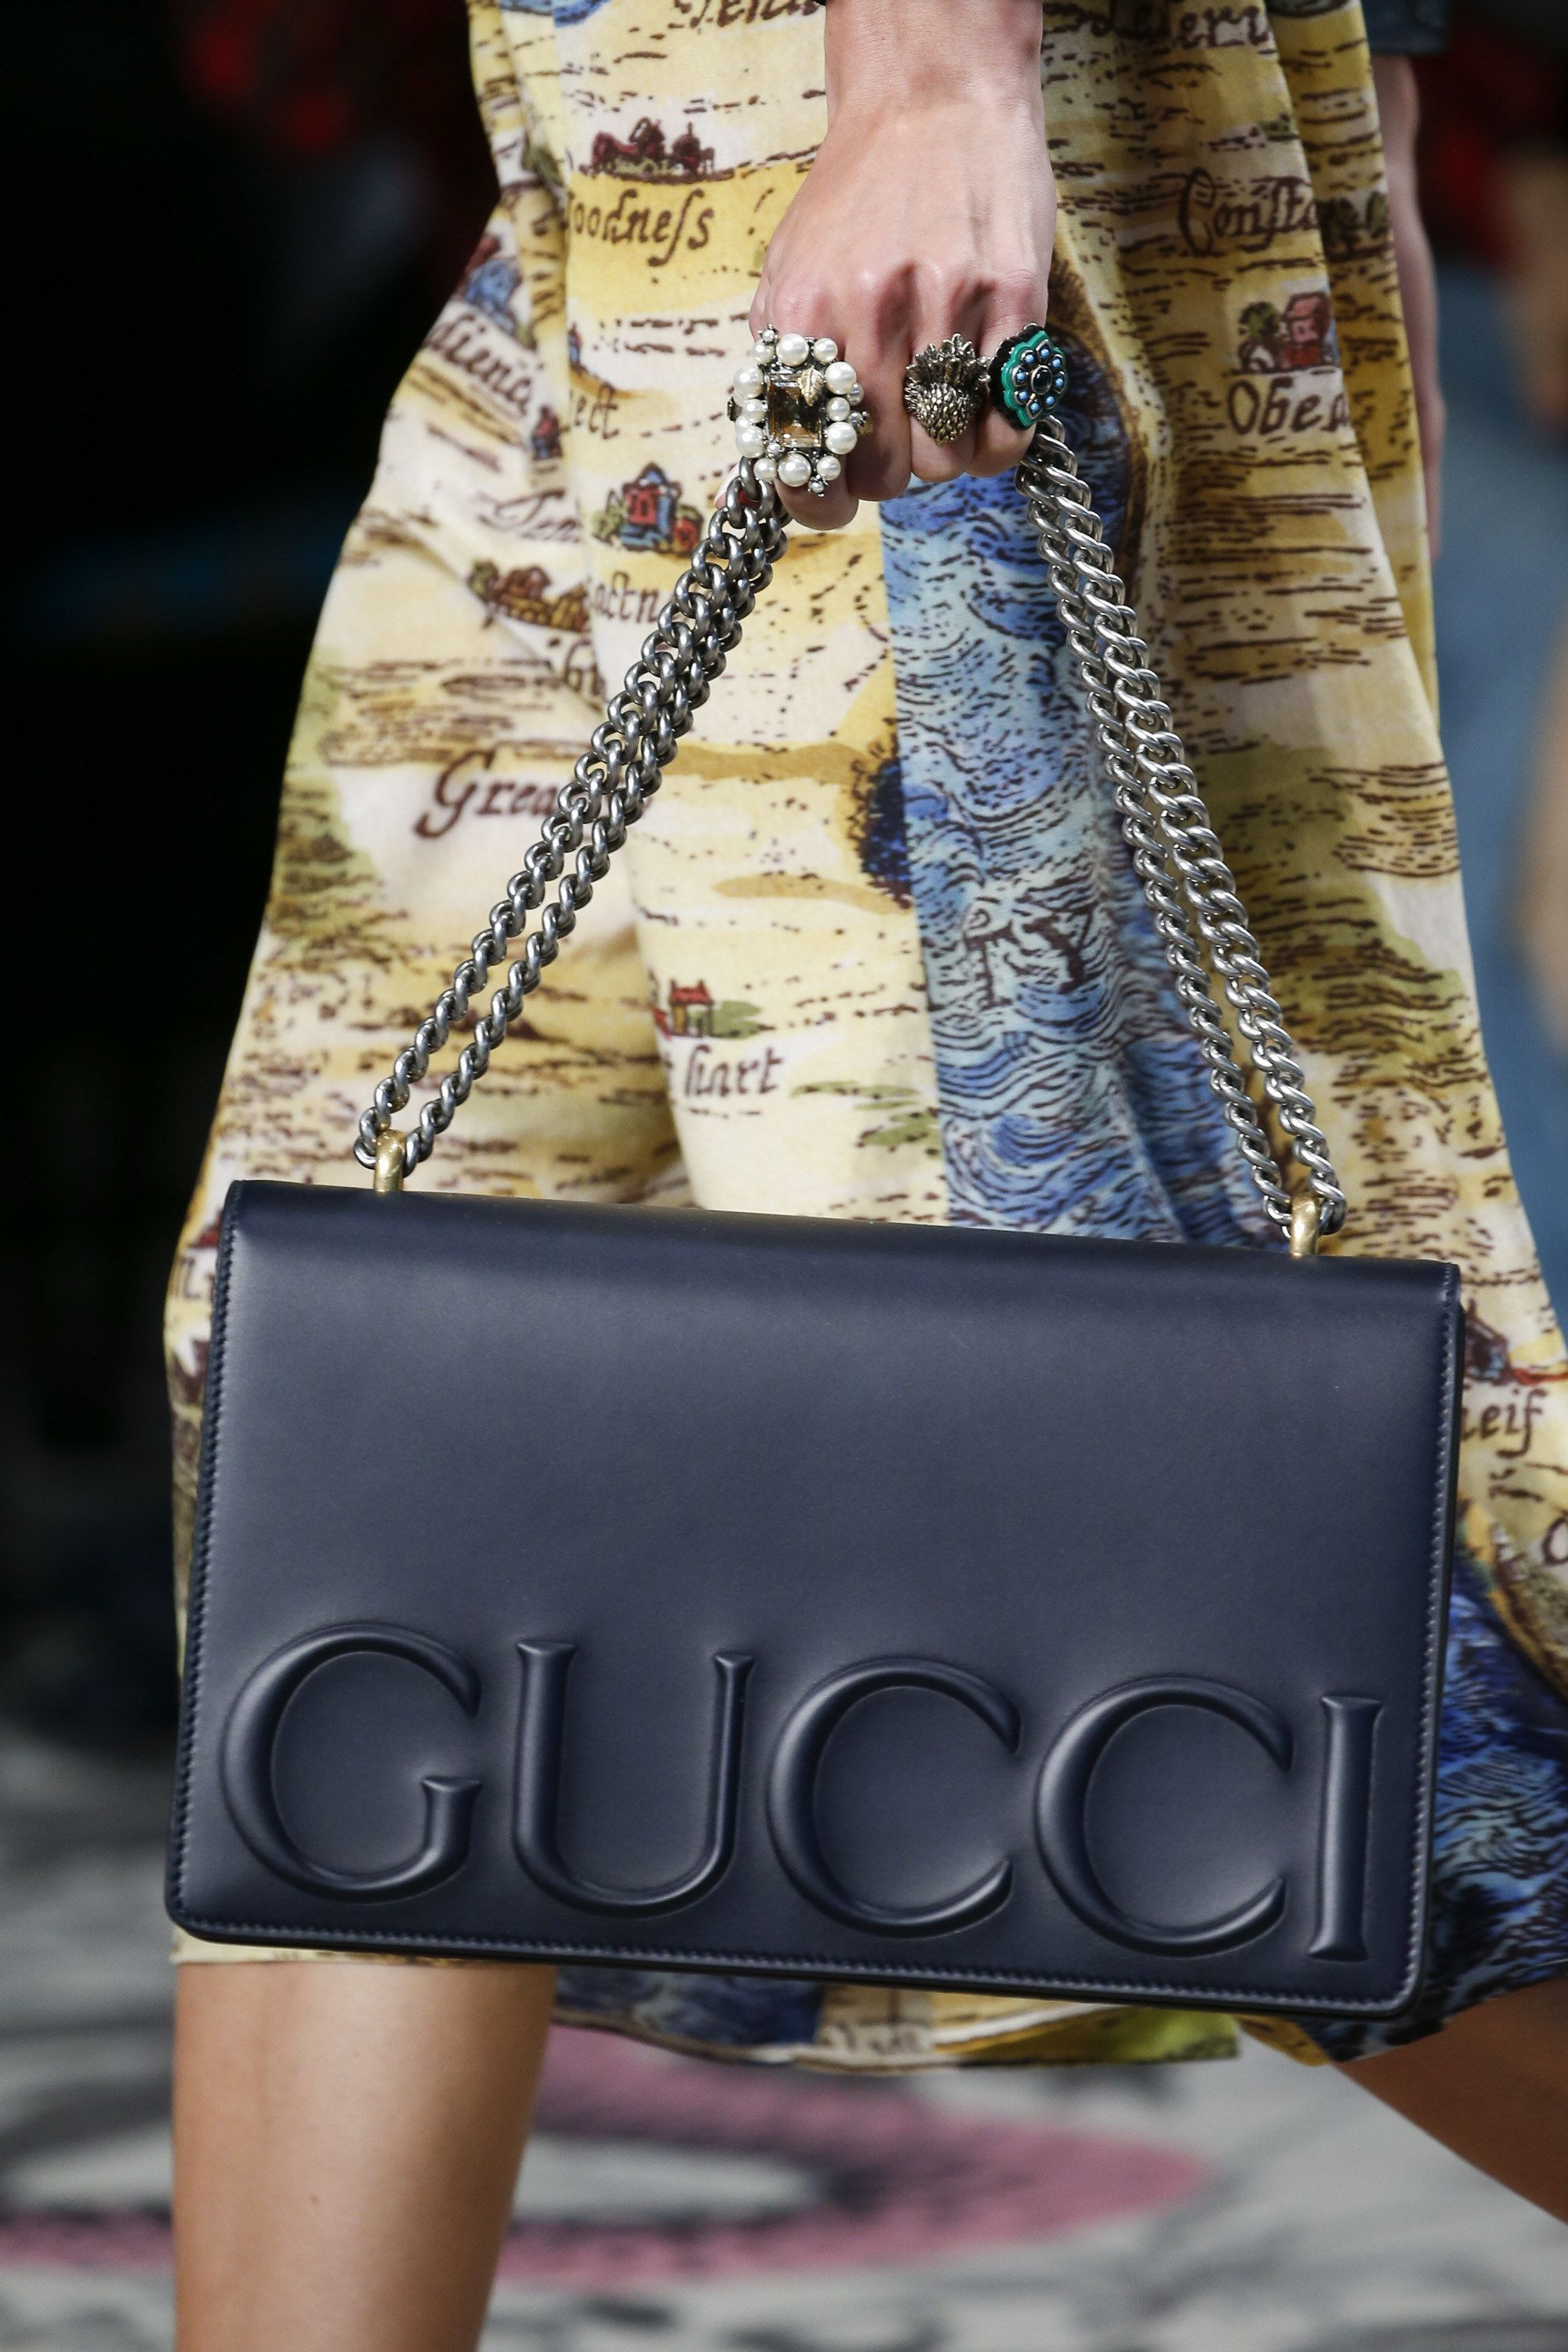 Gucci Spring 2016 Ready-to-Wear Accessories Photos - Vogue  Guccihandbags 8e4efcc9ba4